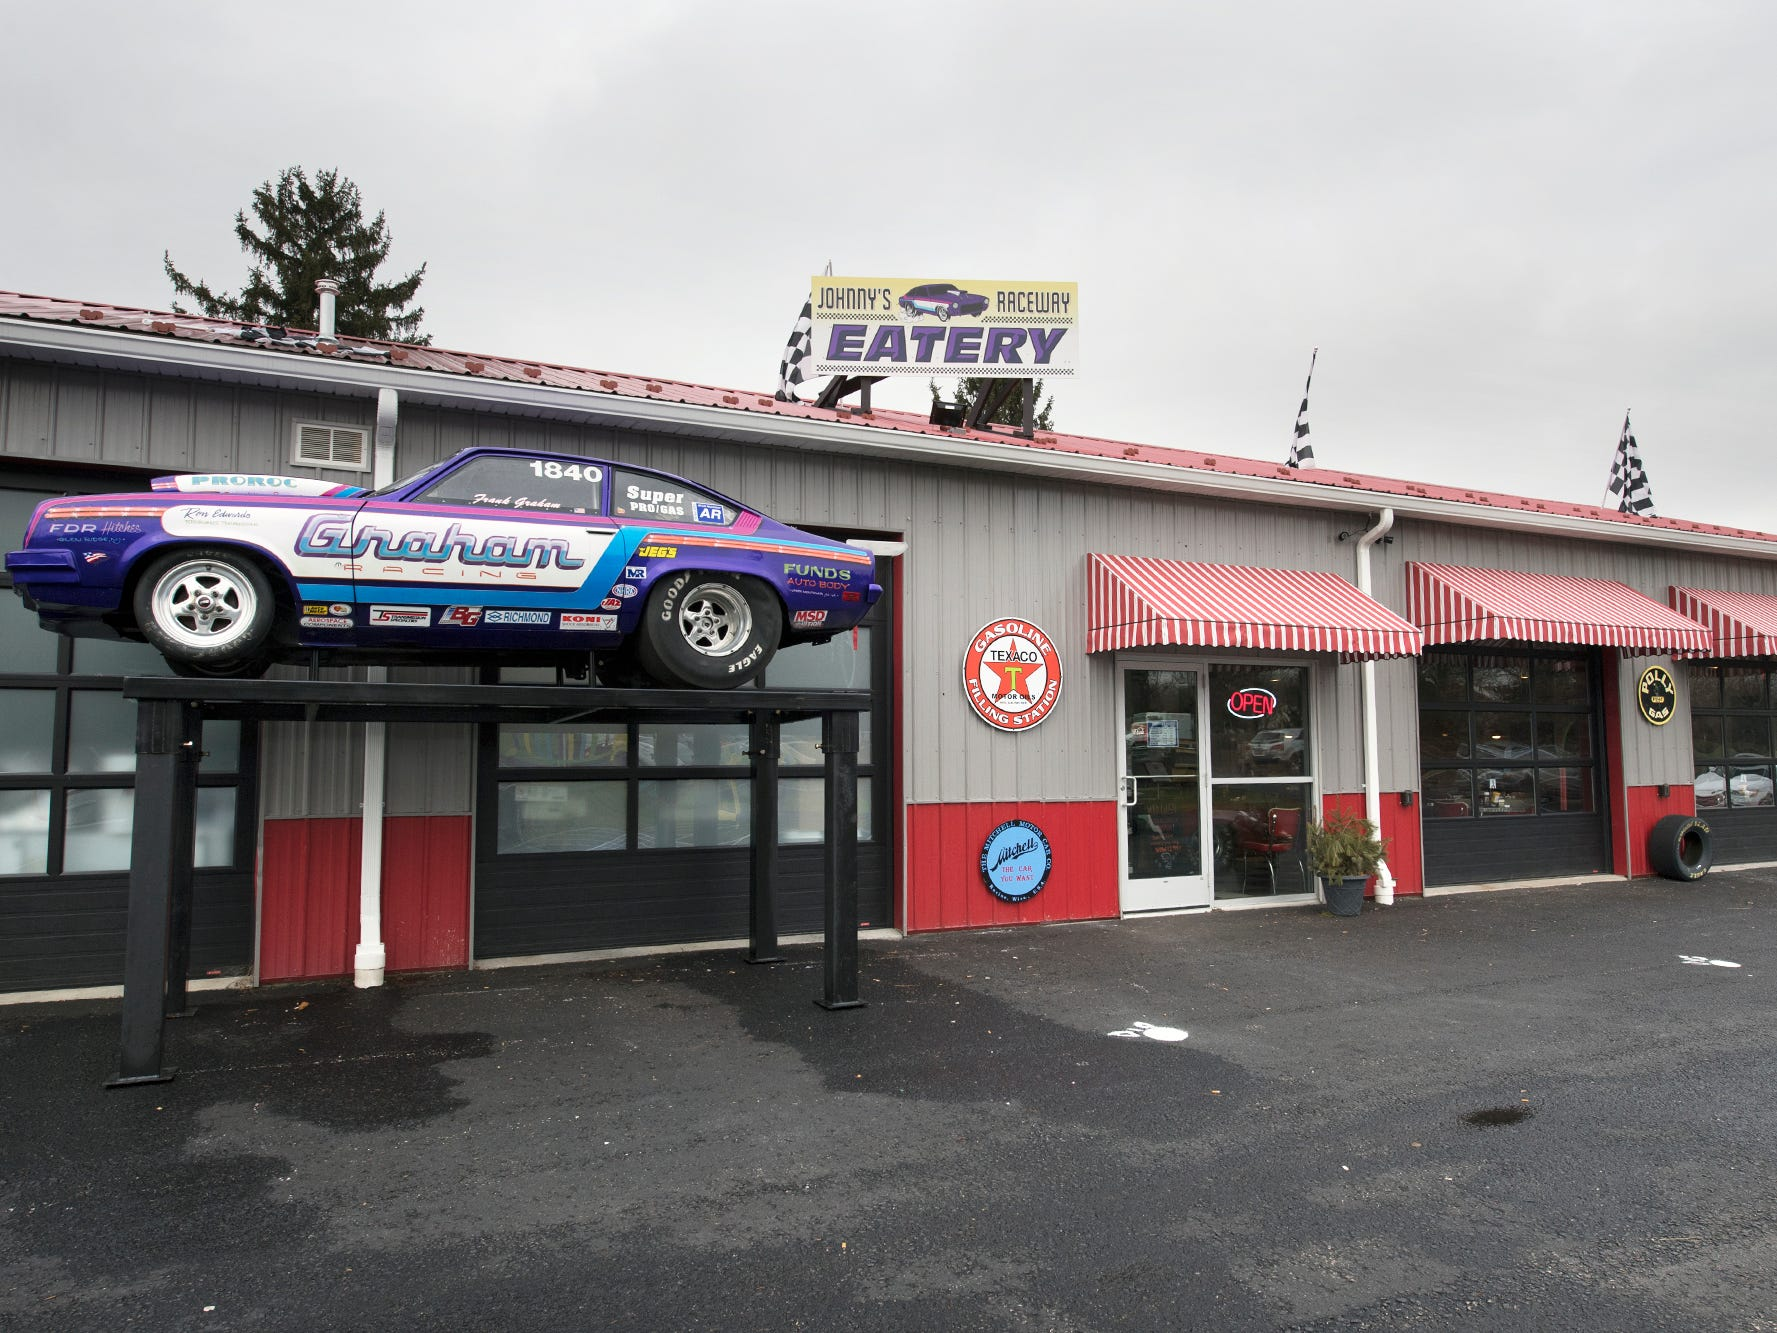 Johnny's Raceway Eatery on South Main Street in Dover Tuesday January 8, 2019.